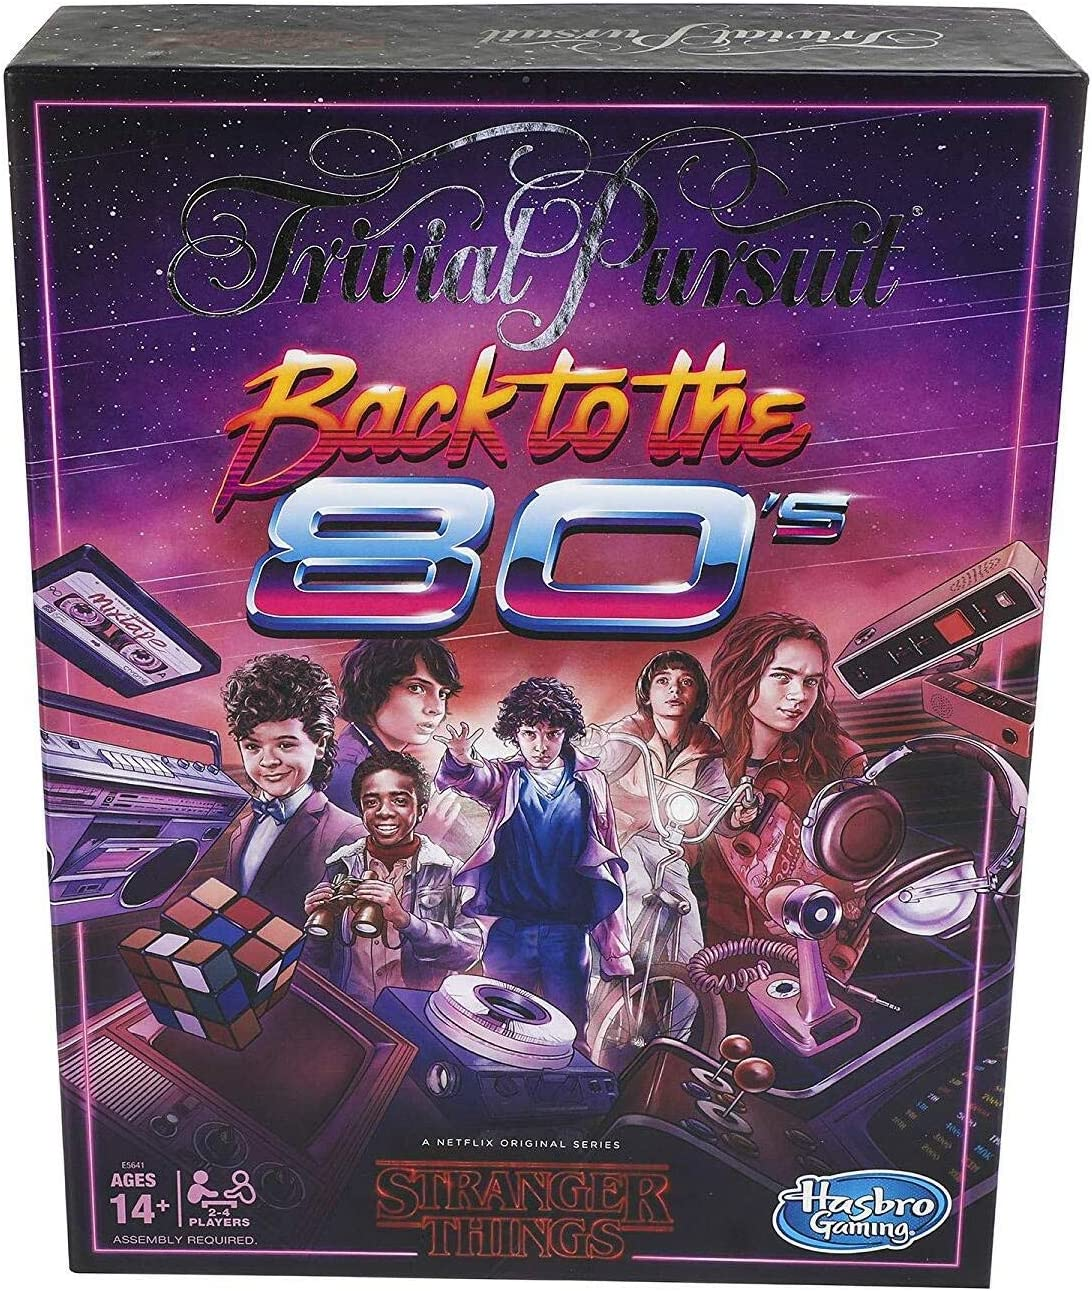 Trivial Pursuit Netflix's Stranger Things Back to The 80s Edition: Adult and Teen Party Board Game